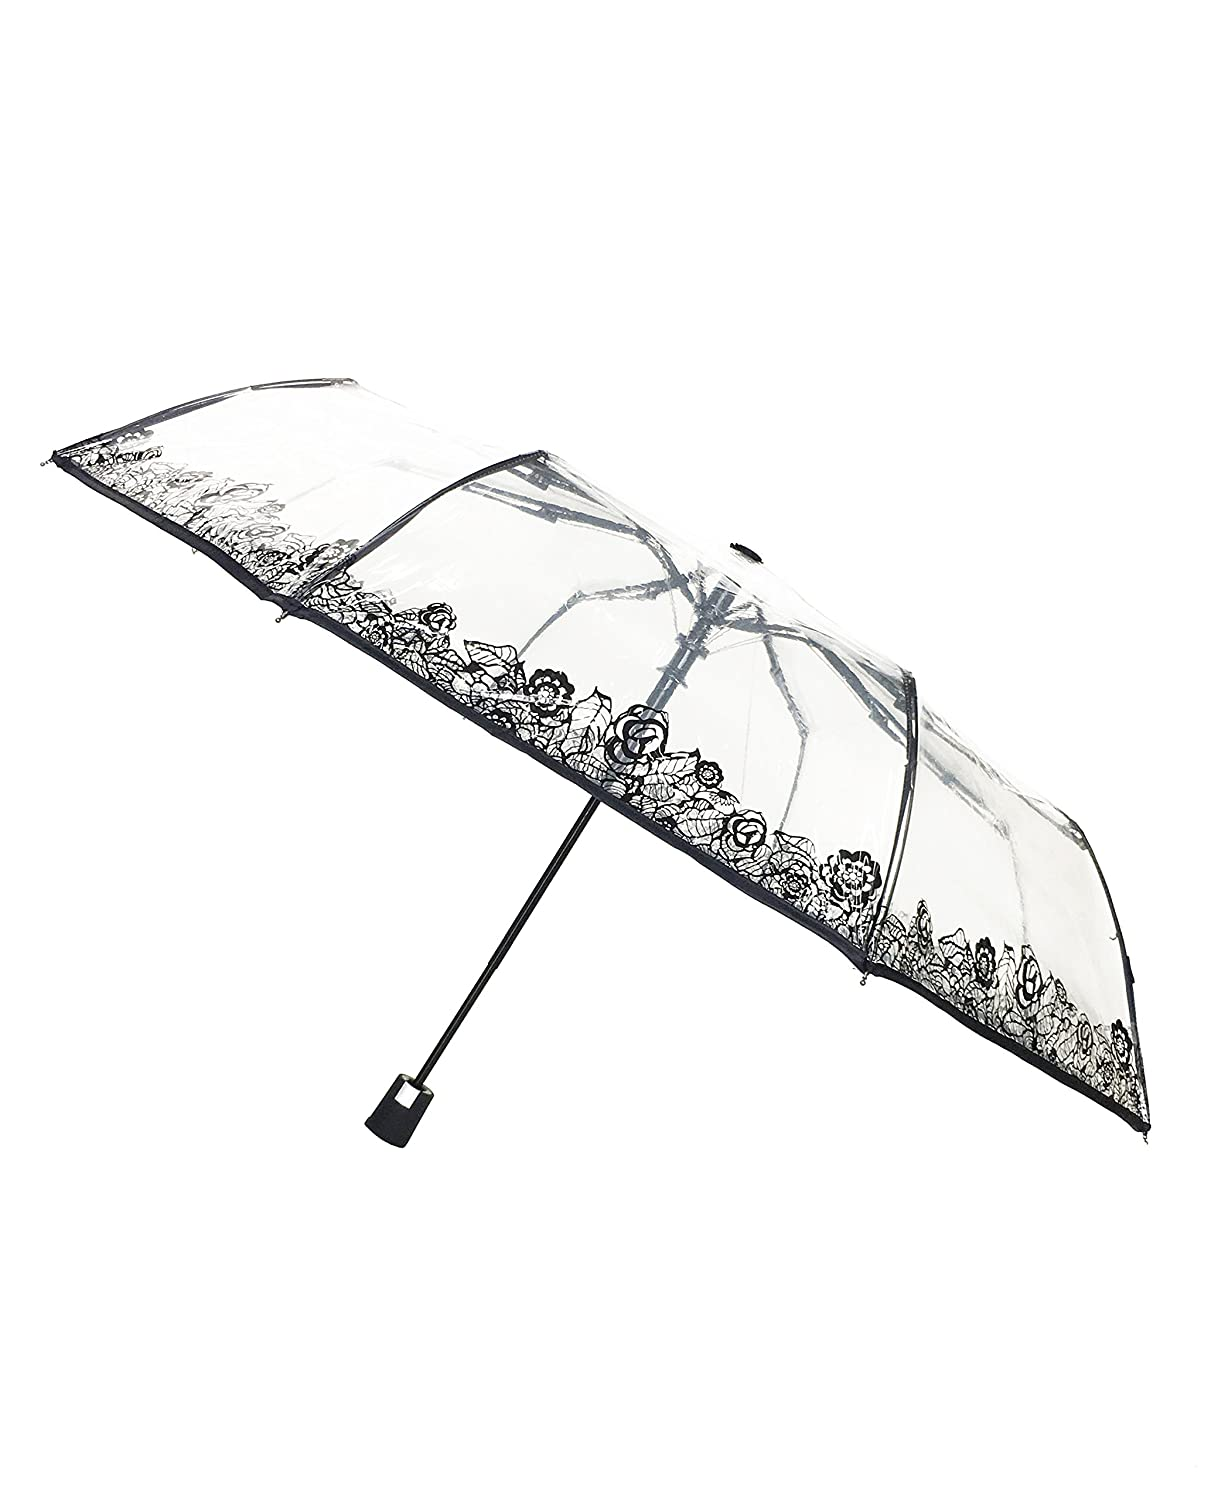 Amazon.com: SMATI Clear Folding Umbrella - Compact - Automatic Open - Sturdy - Flowers (lace) - French Design: Clothing